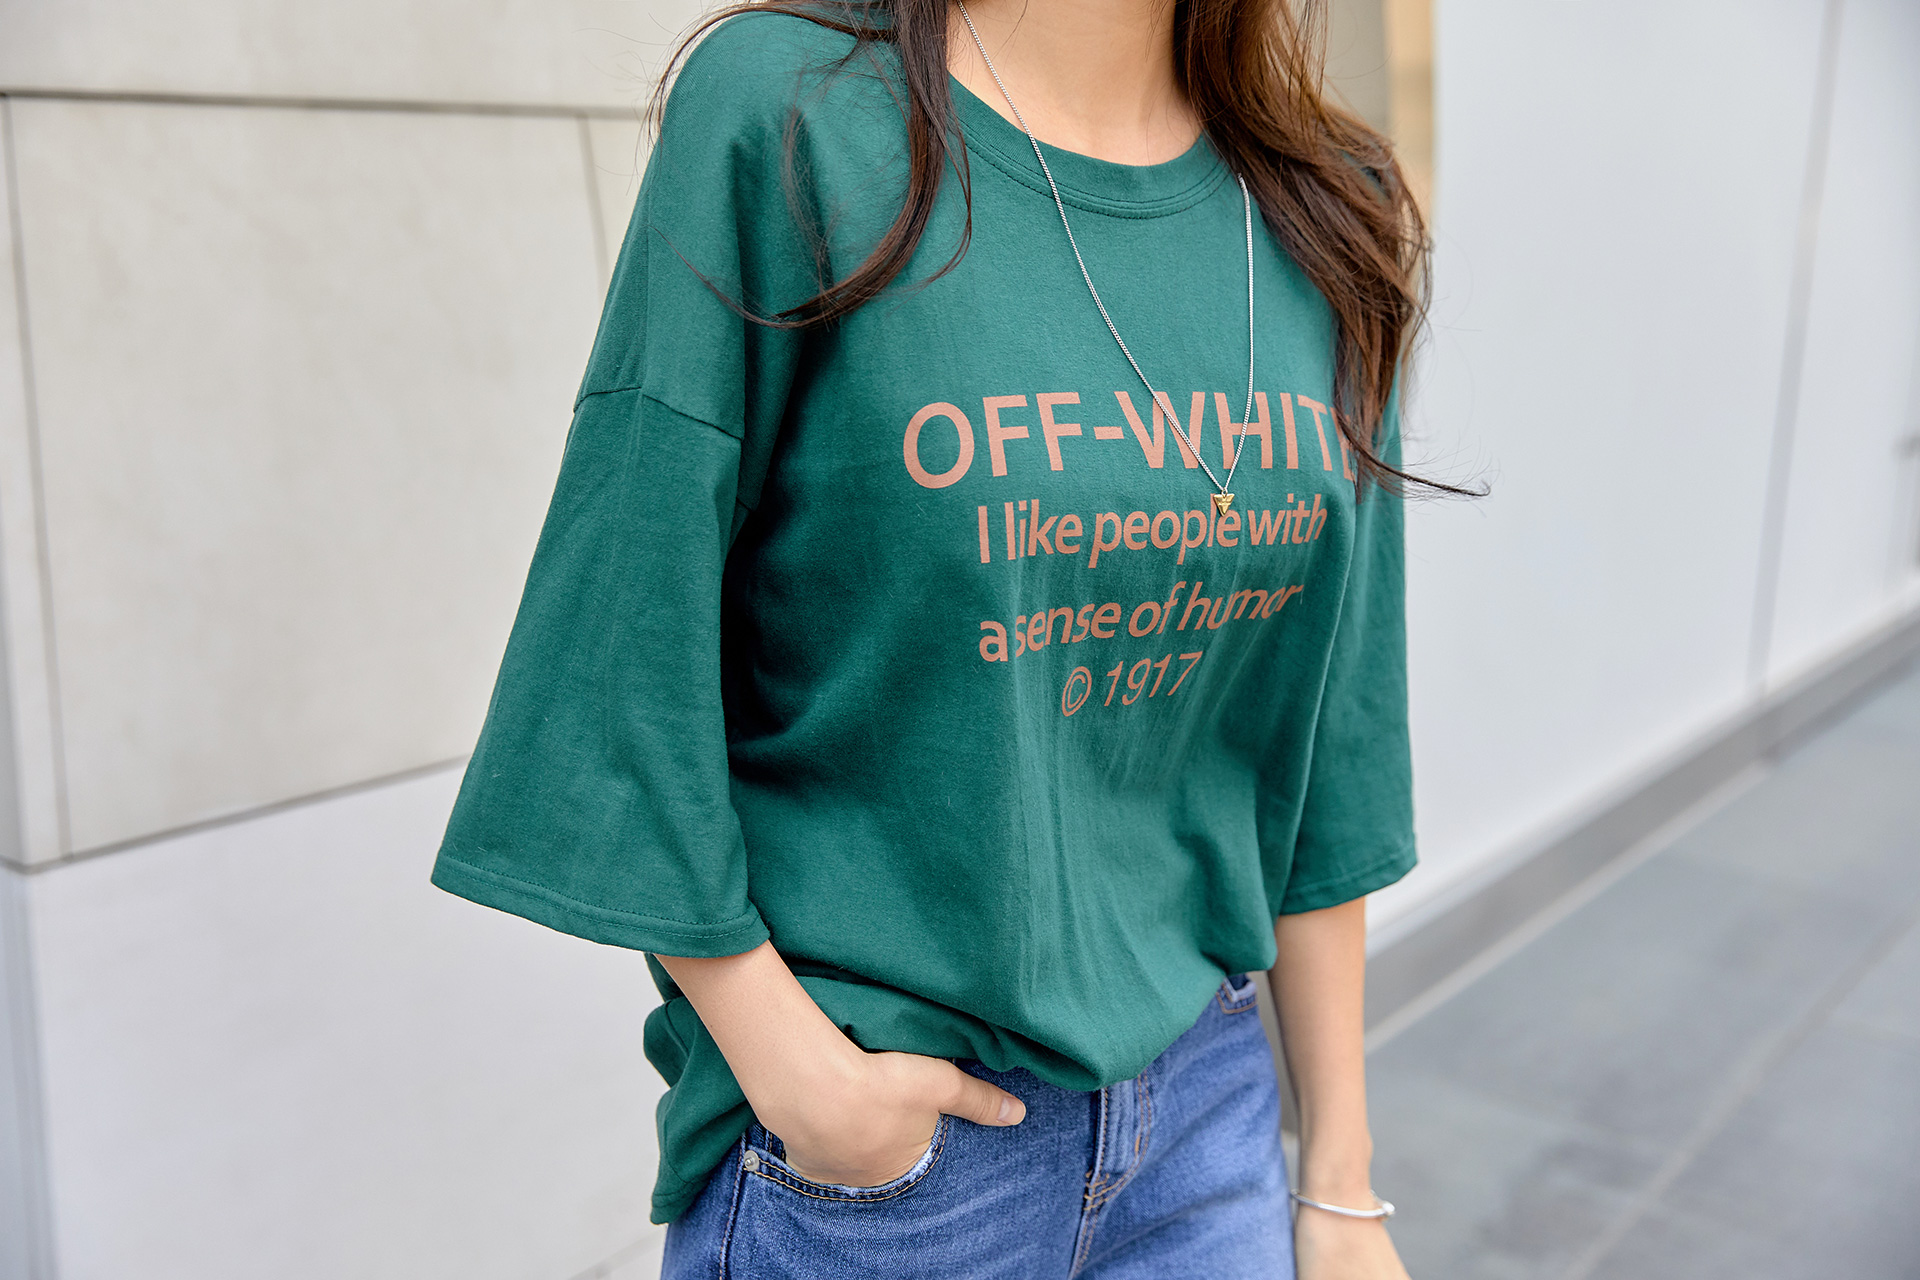 Off Loose-fit Fit Short-sleeved T-shirt #106971